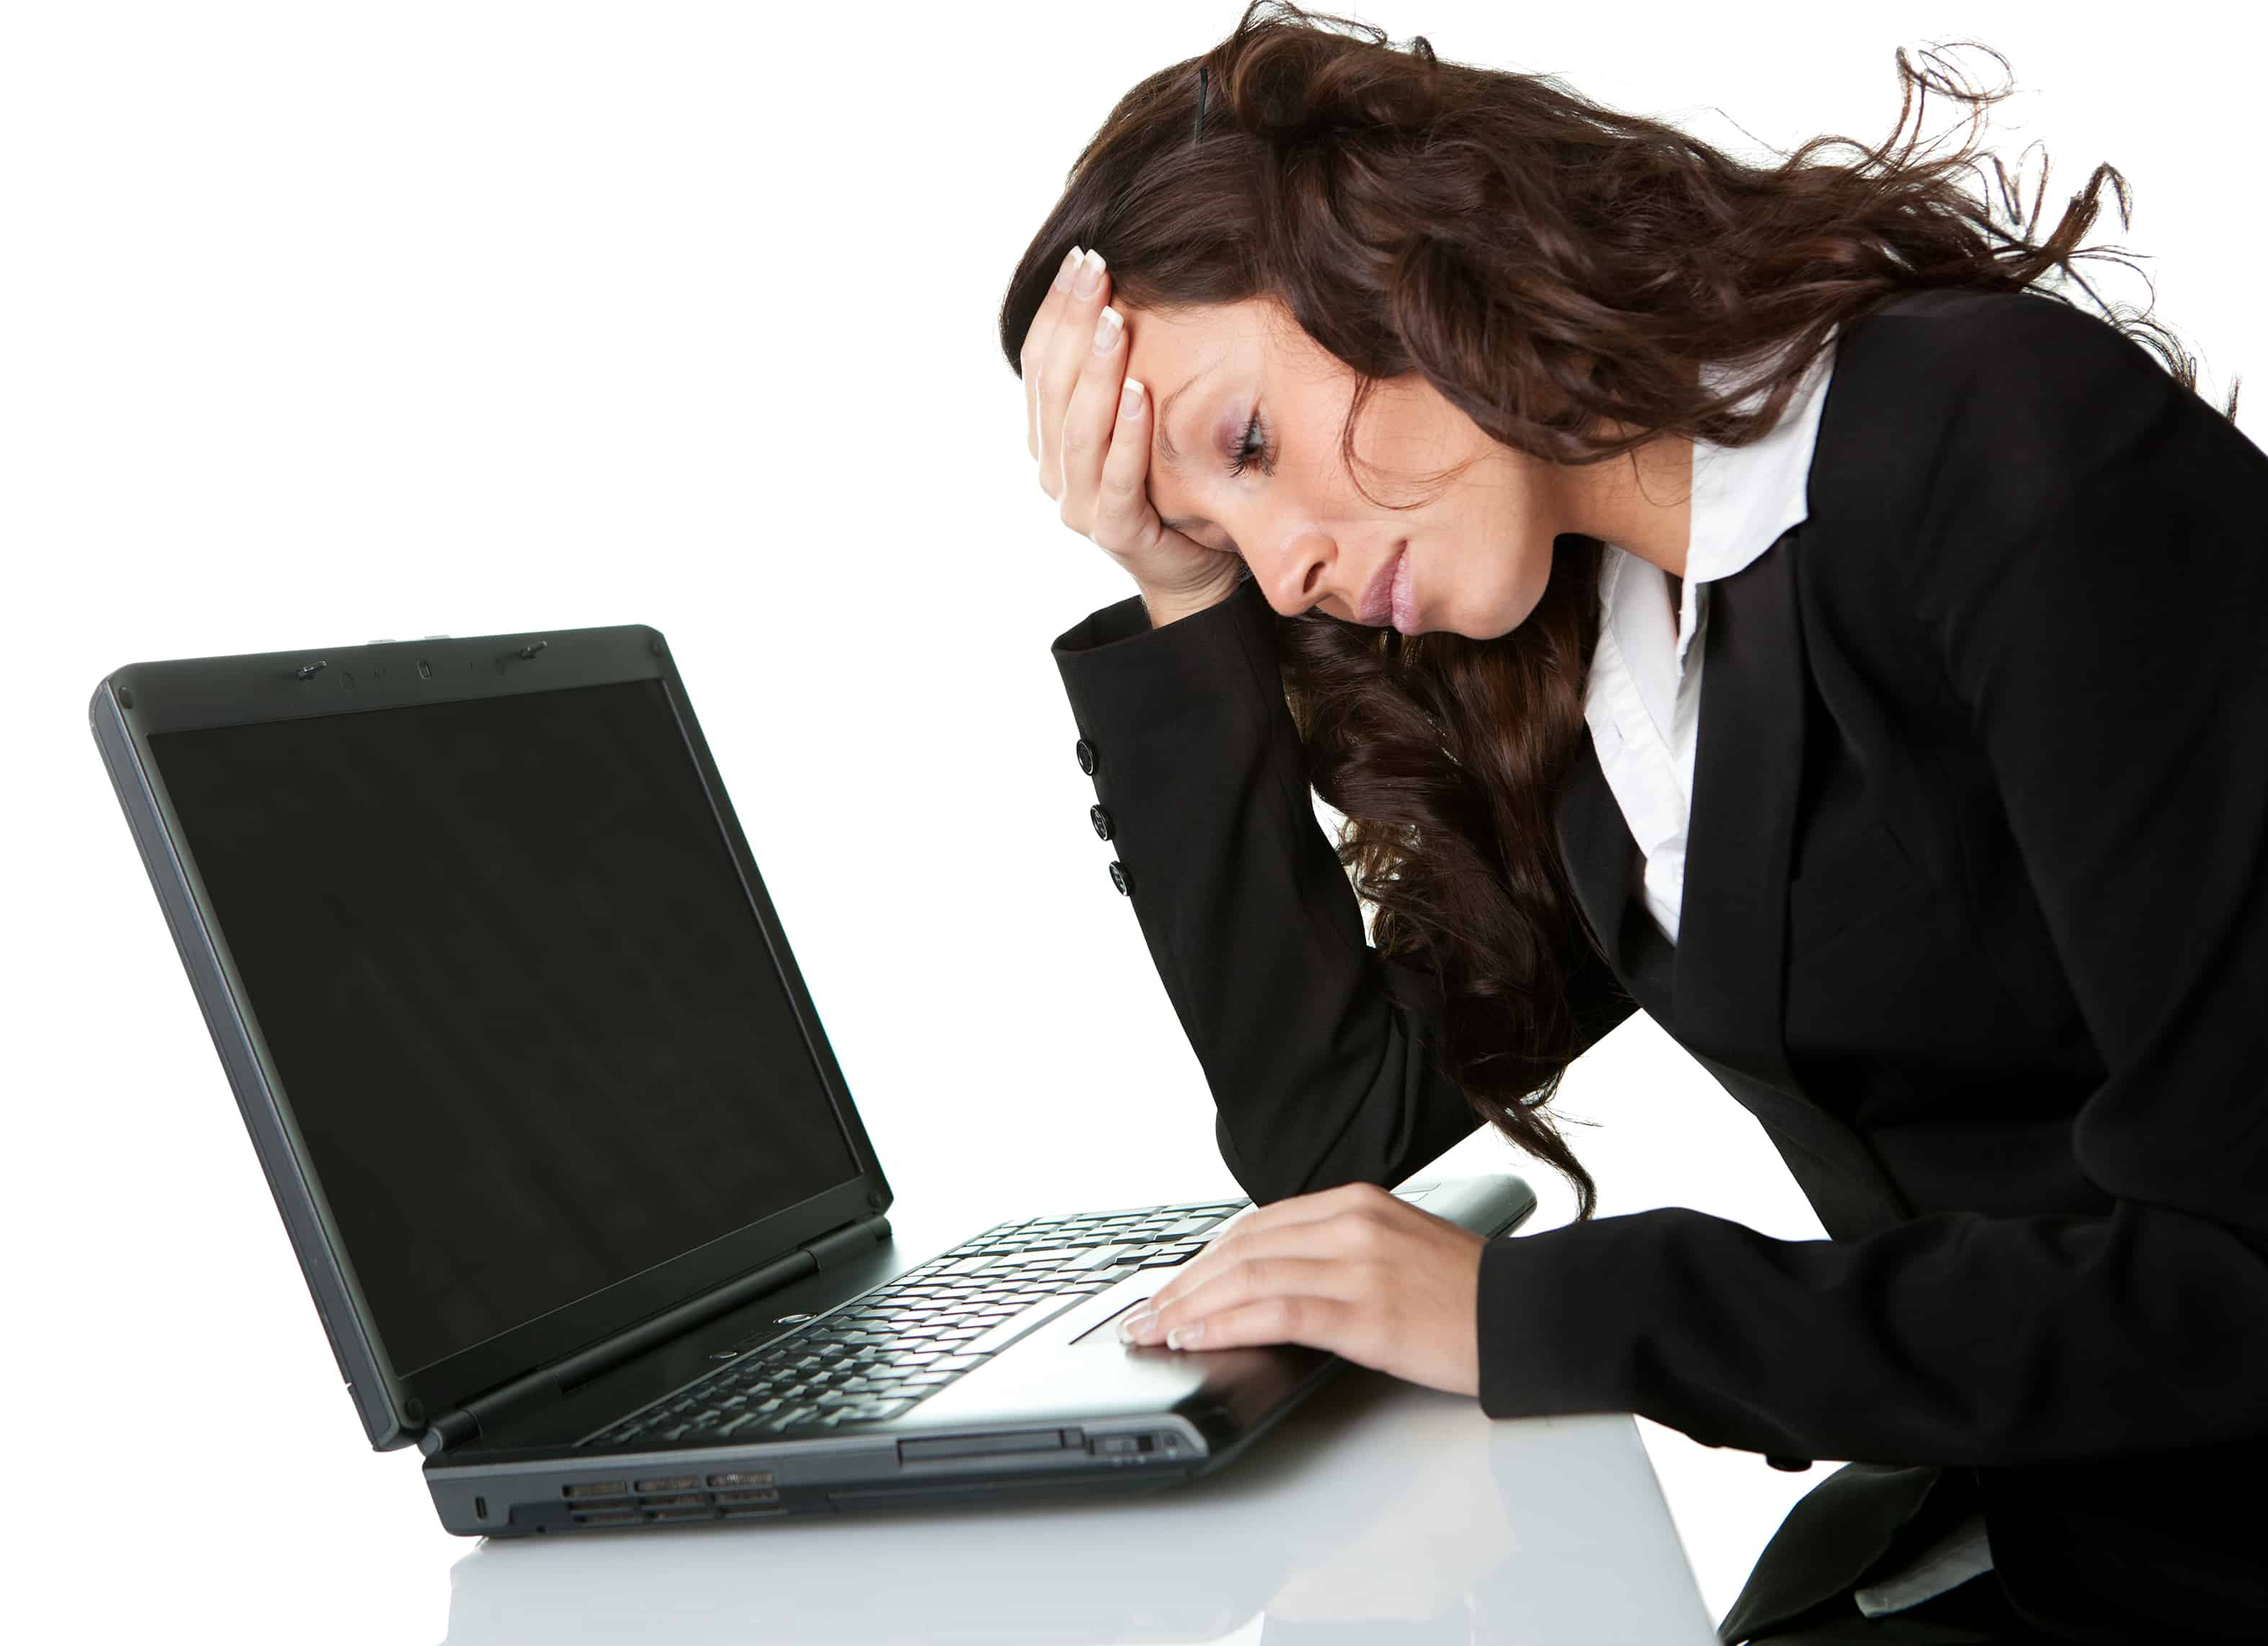 Female businessperson frustrated that her computer won't turn on